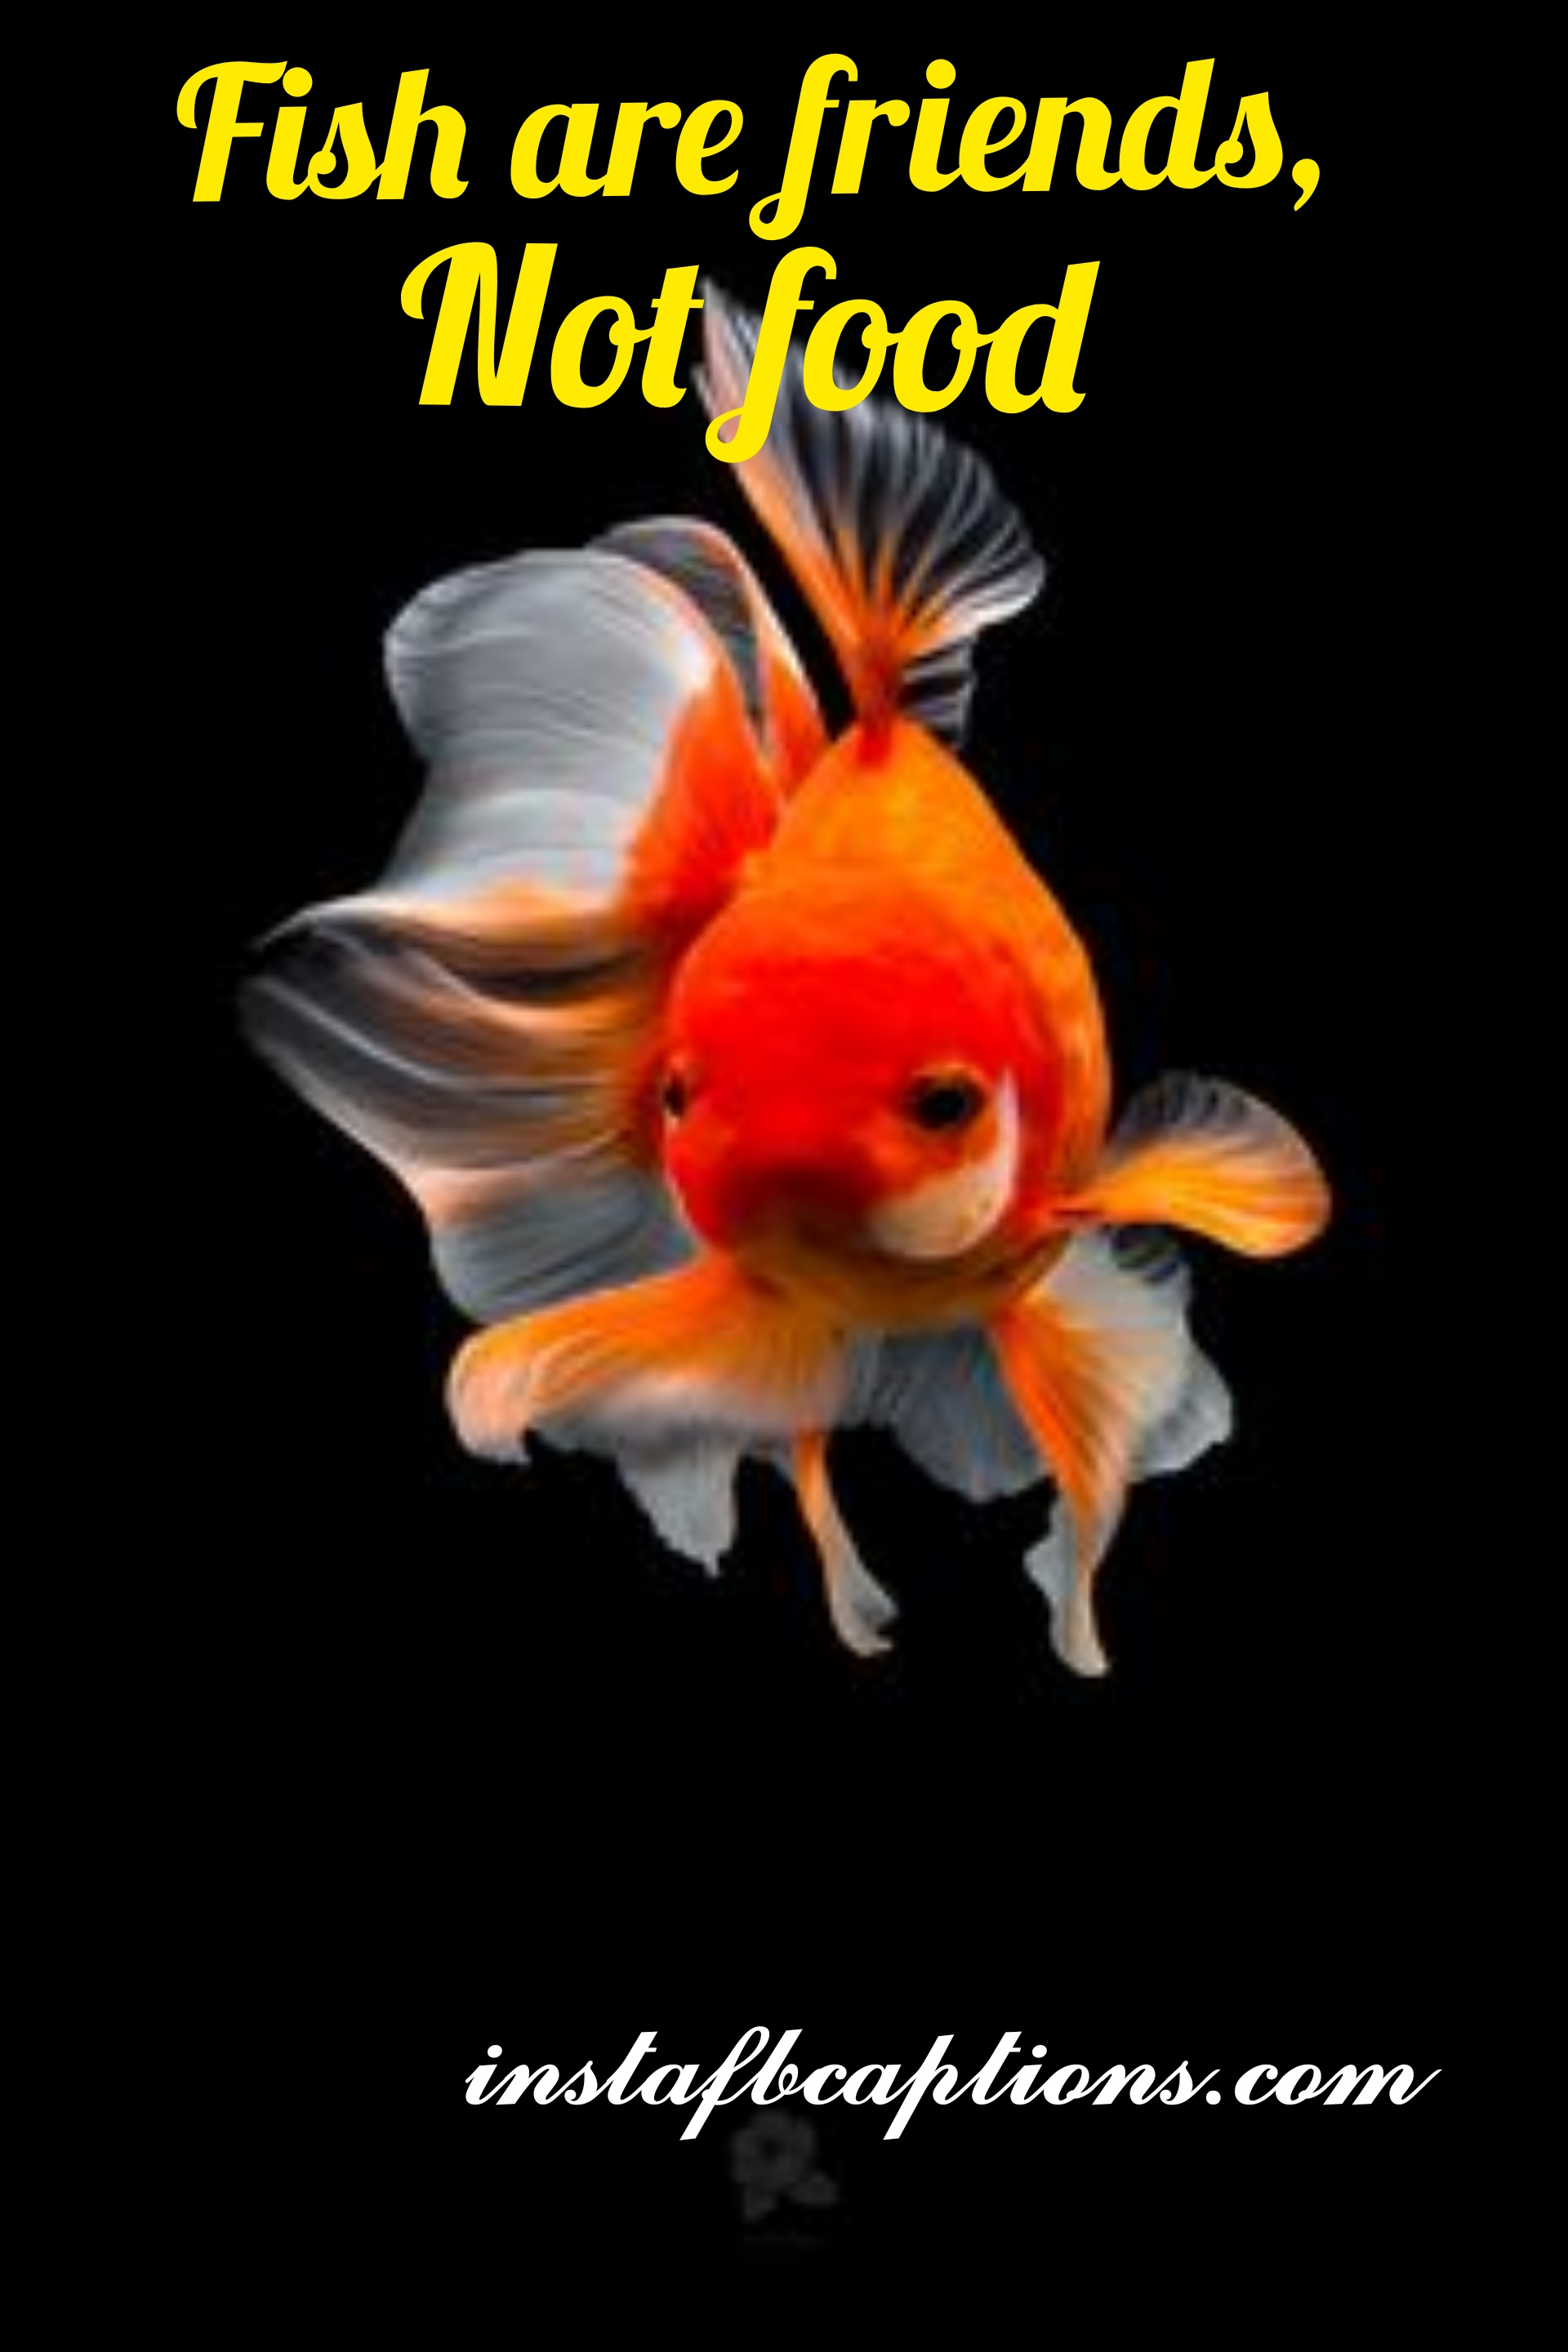 Fishes Are Friends Not Food  - fishes are friends not food - Aquarium captions for Pet Fish||(cute planted nature)